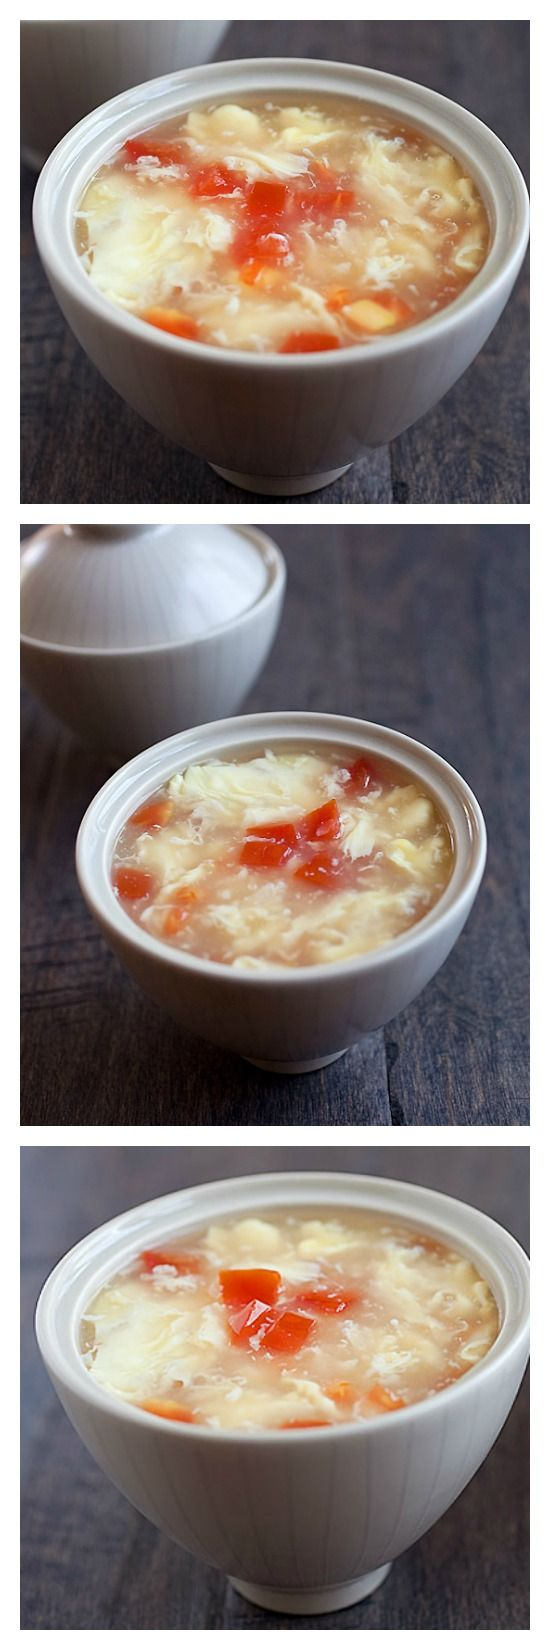 Egg drop soup - easiest and best Chinese egg drop soup recipe you'll find online. Takes 10 minutes, delicious and much better than takeout | rasamalaysia.com